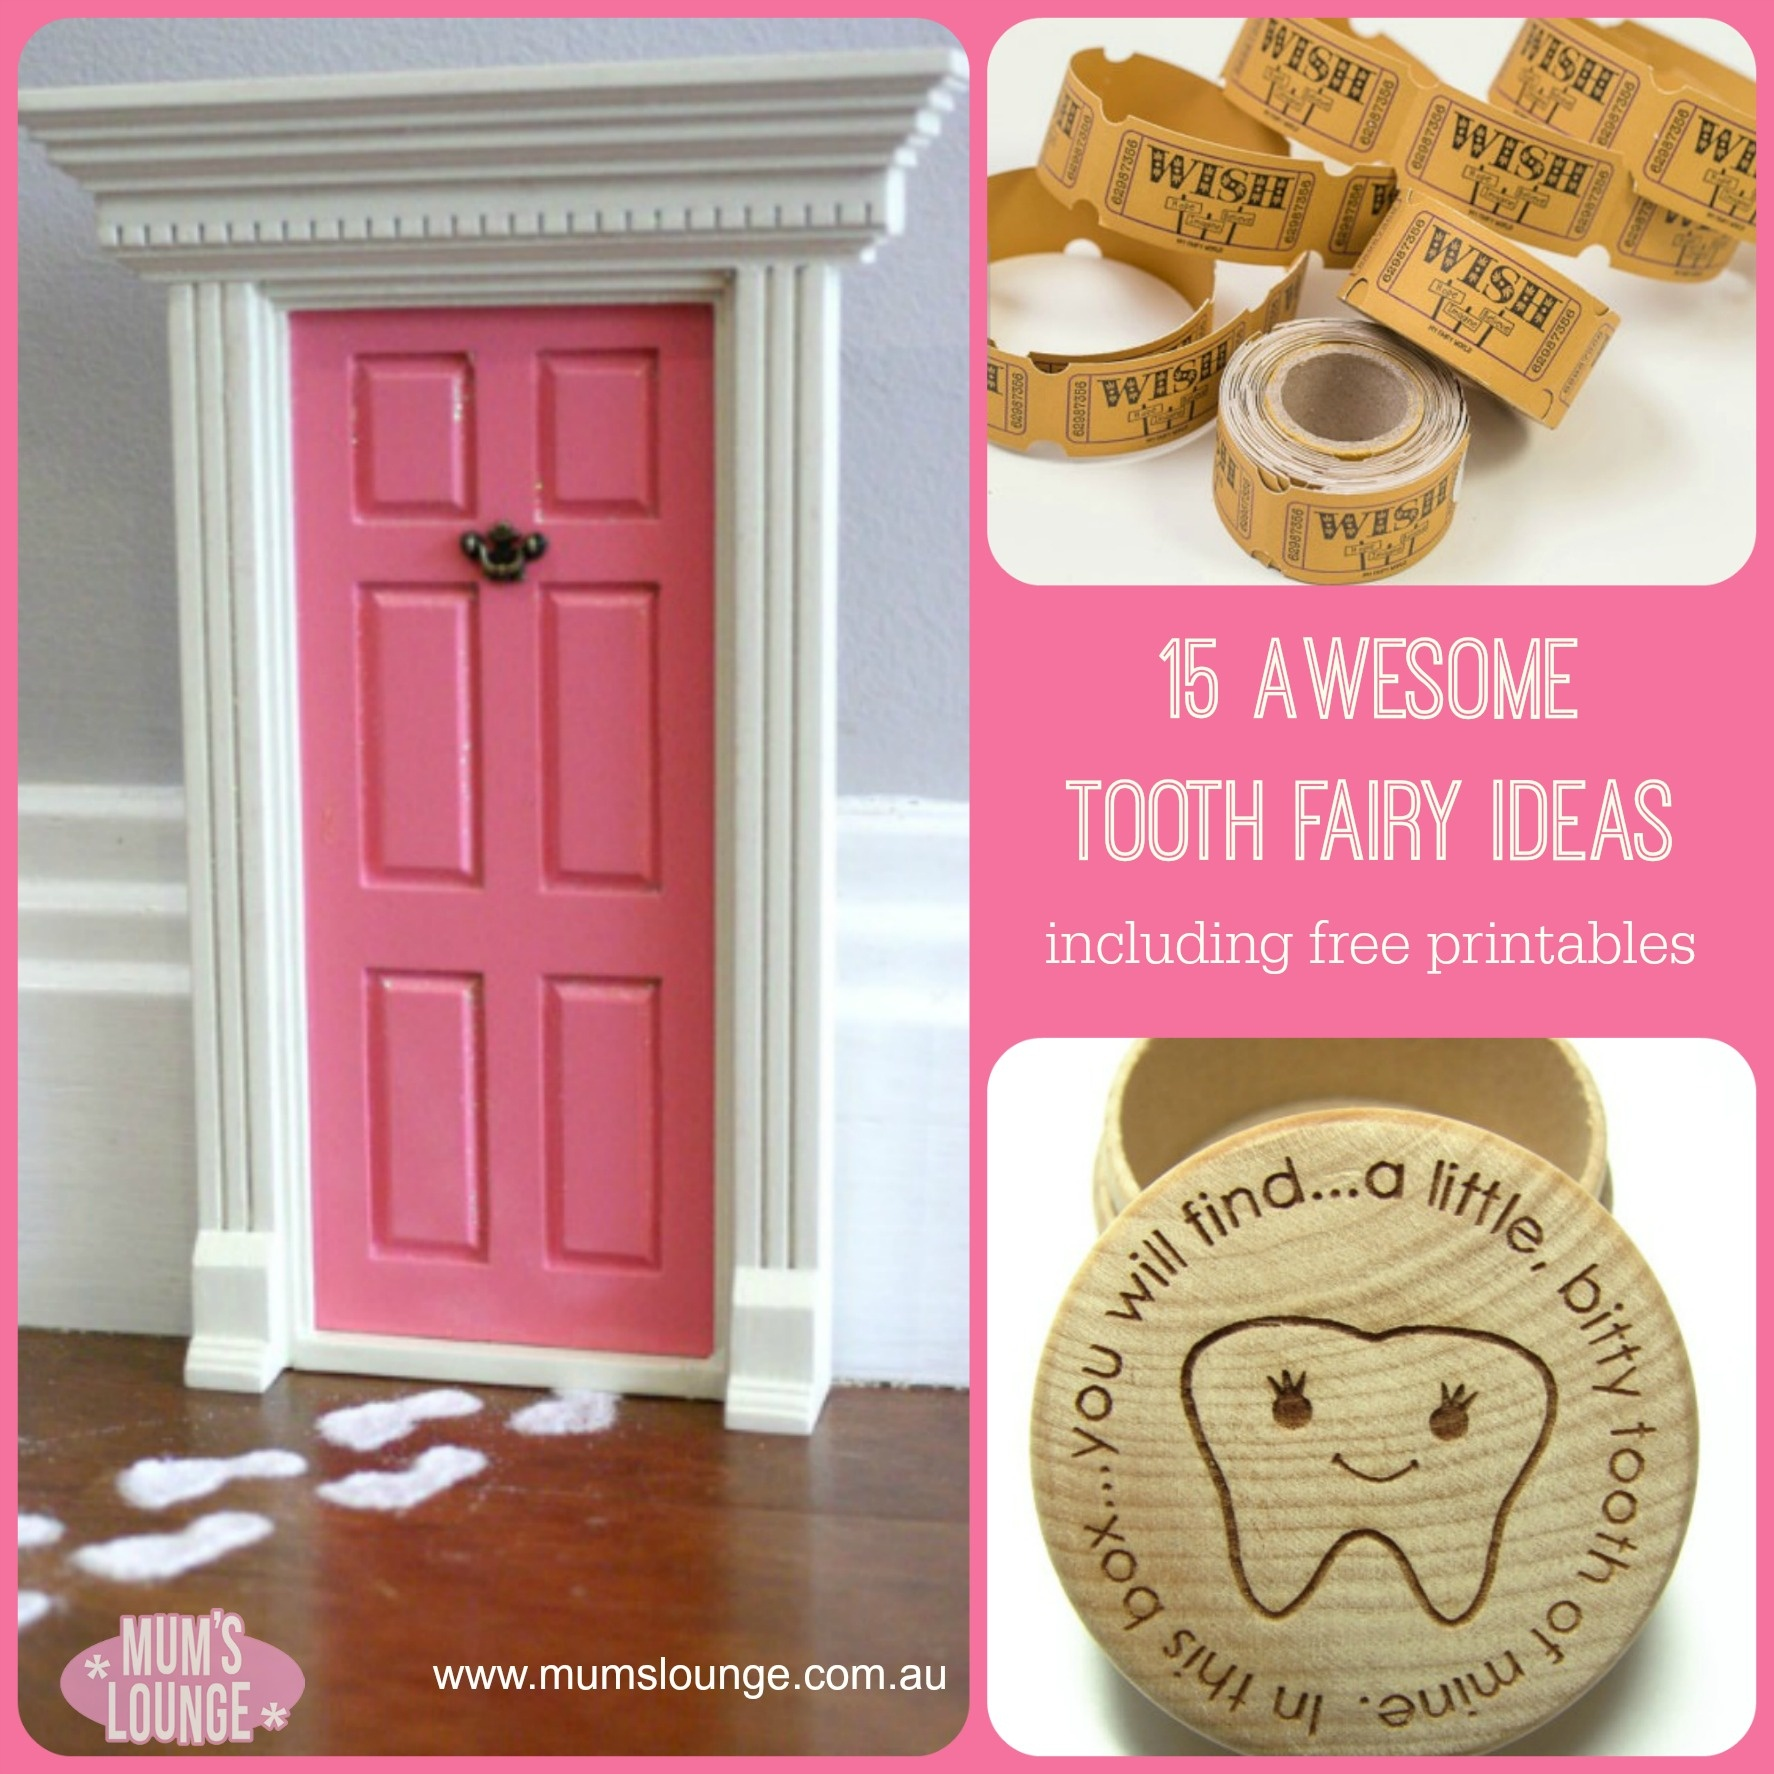 15 Awesome Tooth Fairy Ideas & Free Printables - Mum's Lounge - Tooth Fairy Stationery Free Printable